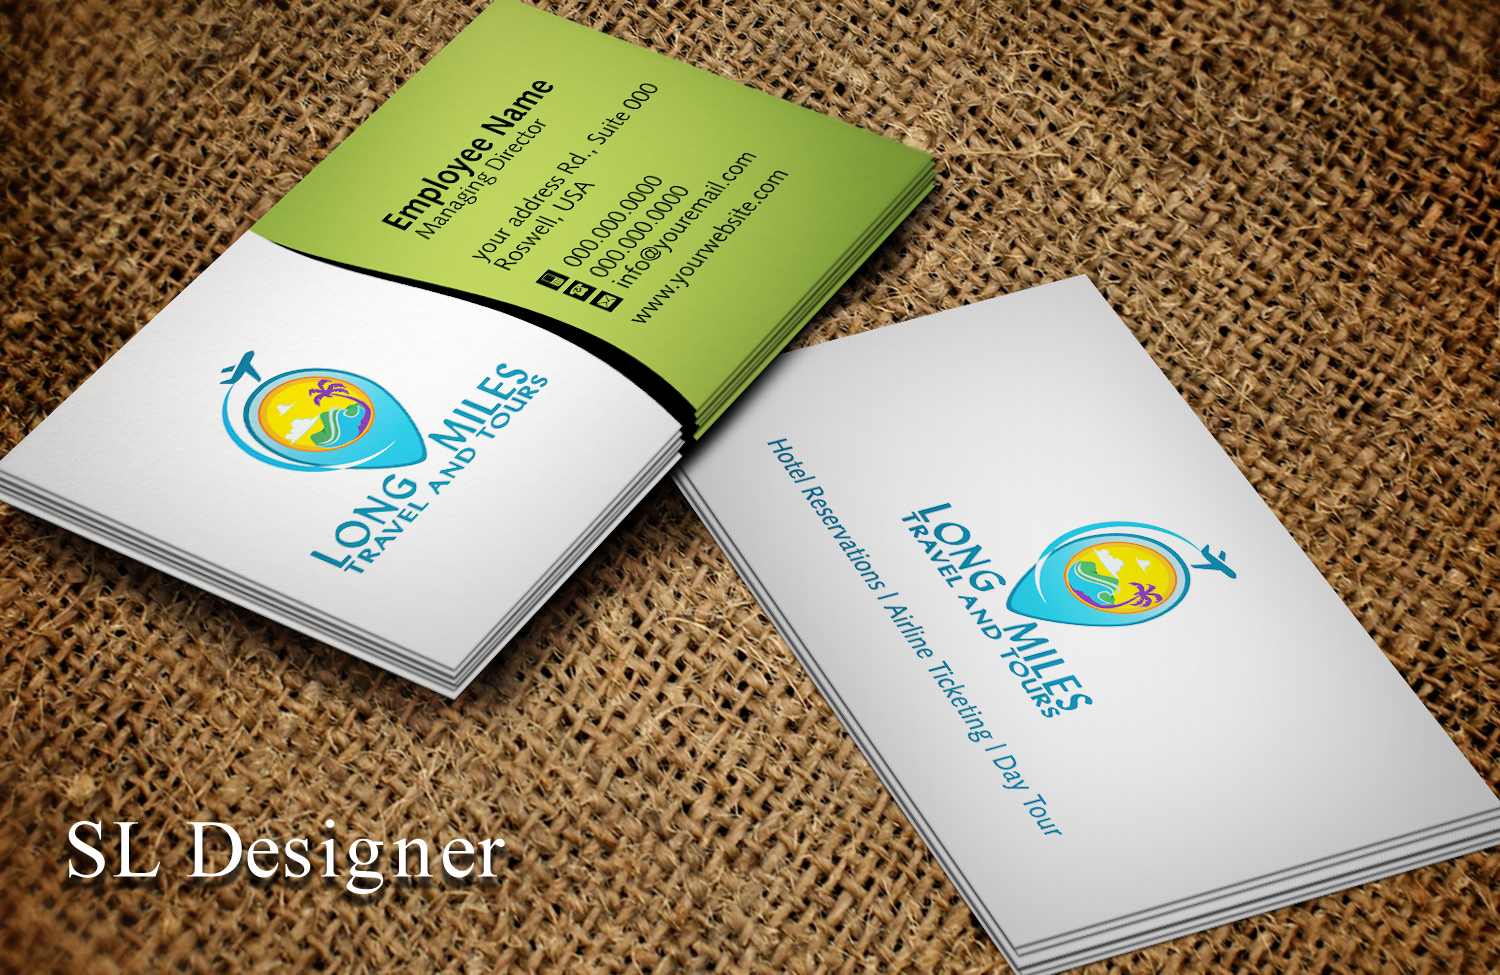 Tours Travels Business Card Design Image collections - Business Card ...